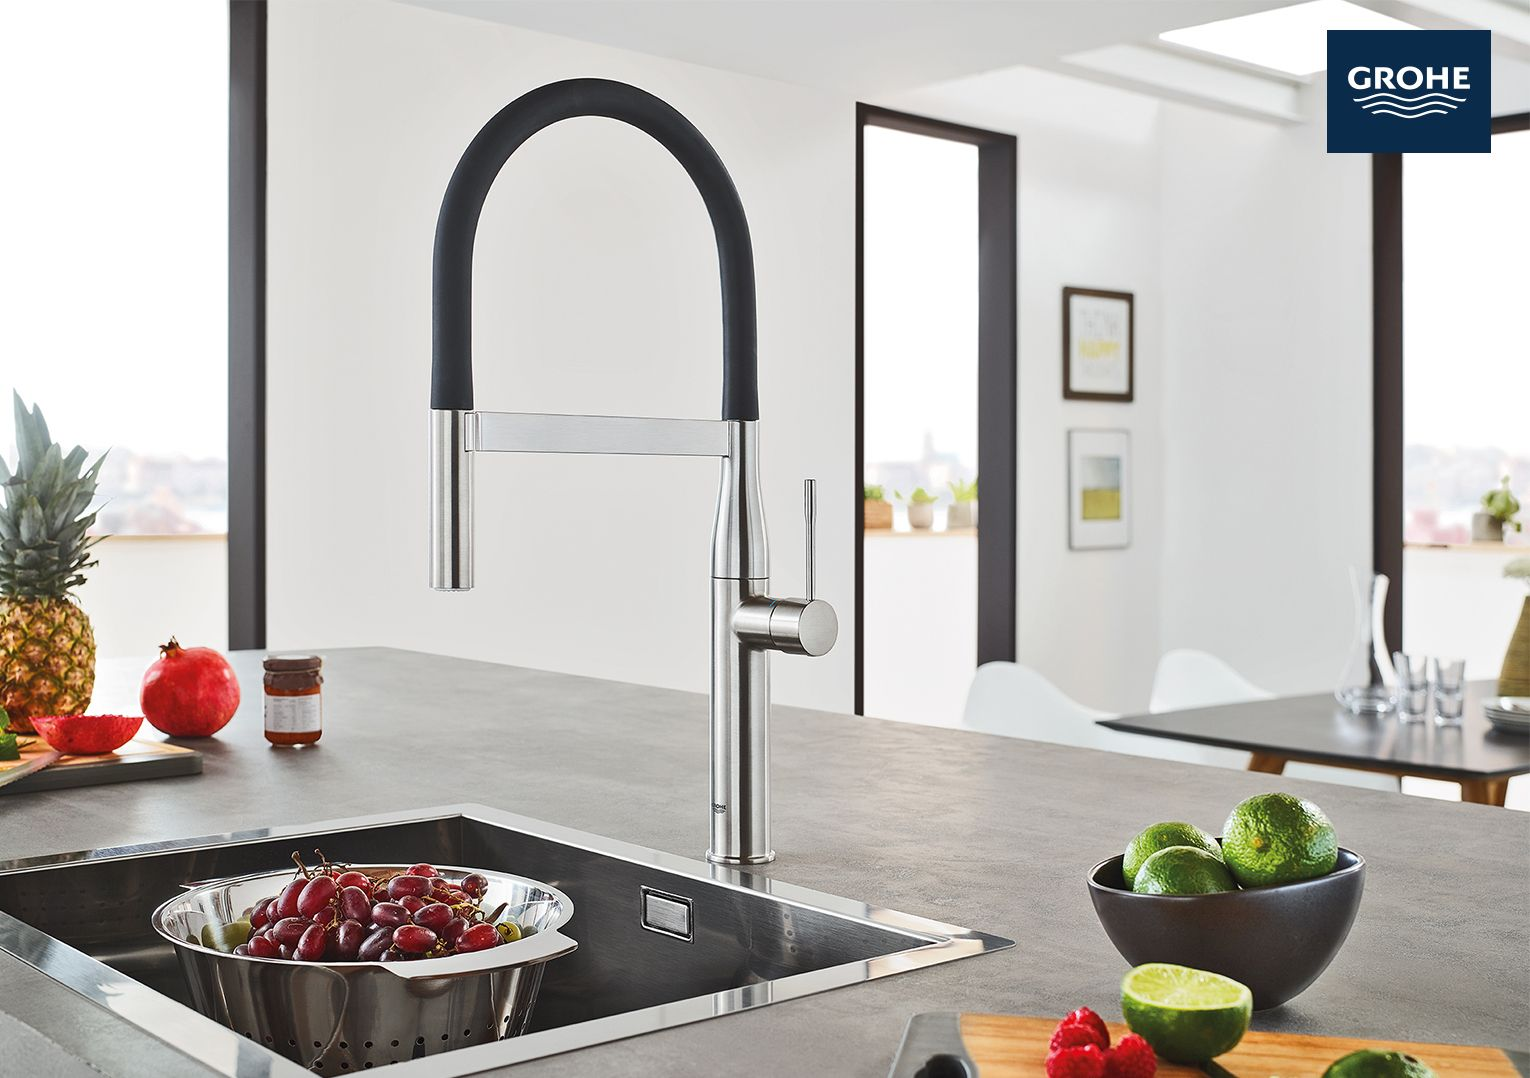 The New GROHE Essence Semi Pro Kitchen Faucet Has Modern Design And Color  Options To